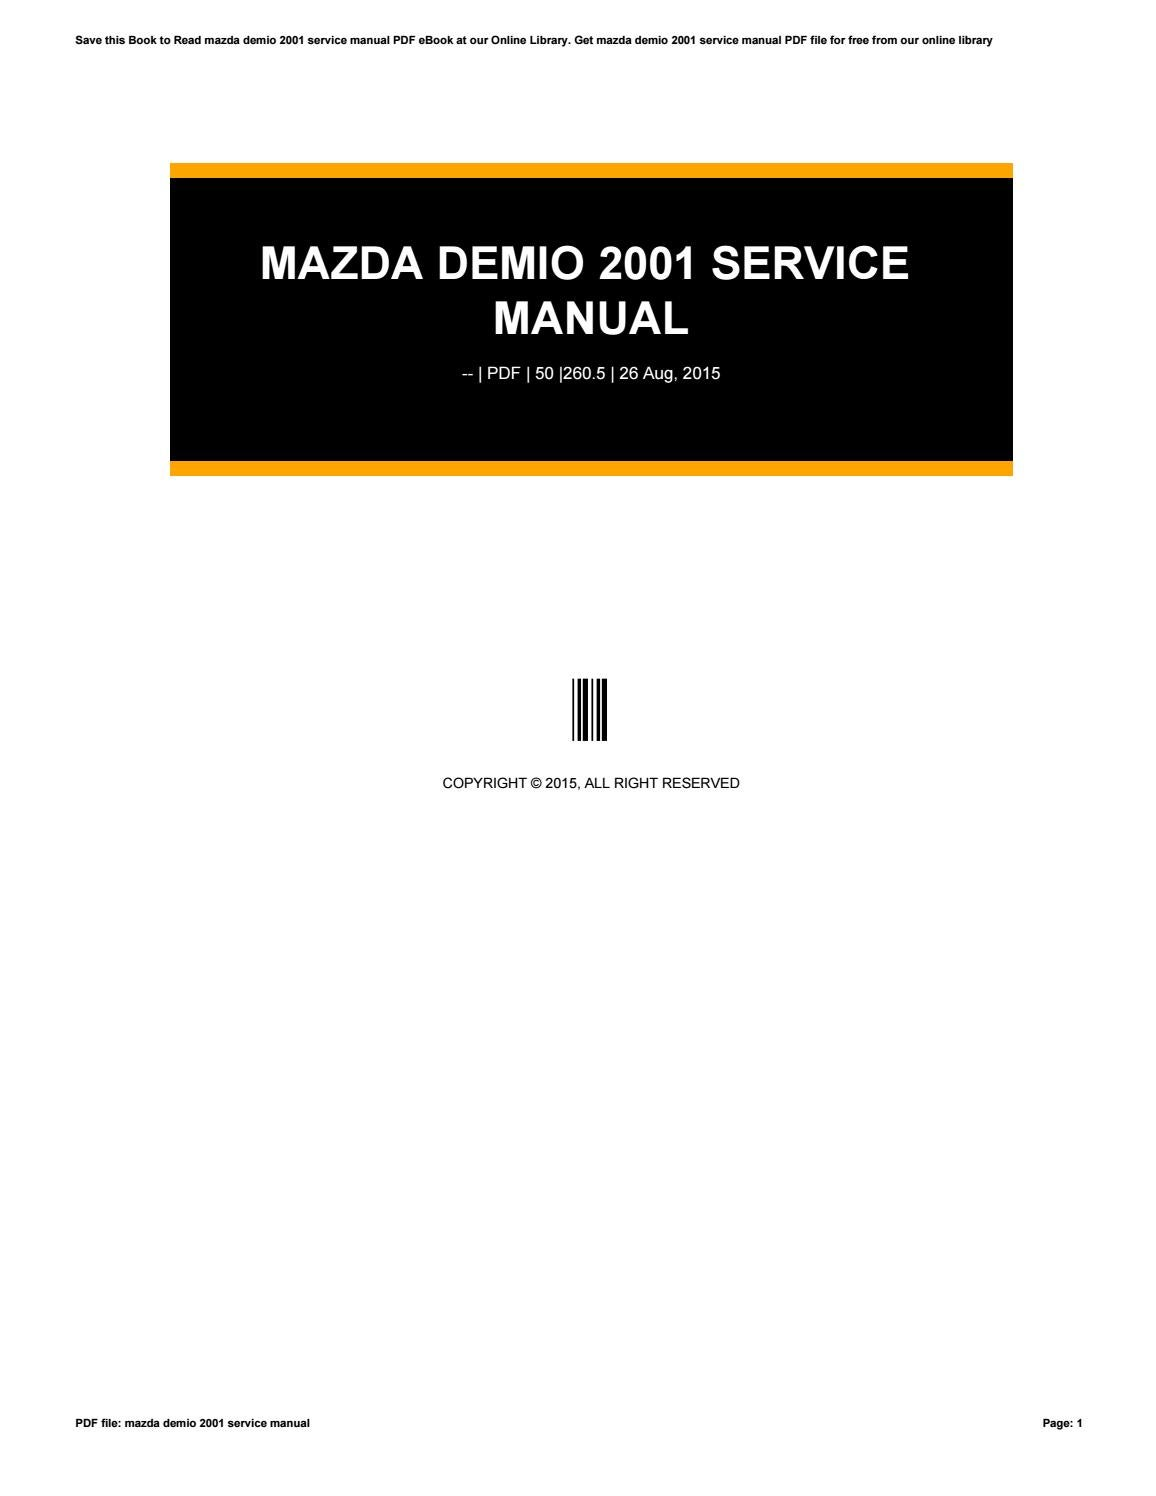 Mazda e2015 repair manual ebook array mazda demio 2001 service manual by toon95 issuu rh issuu fandeluxe